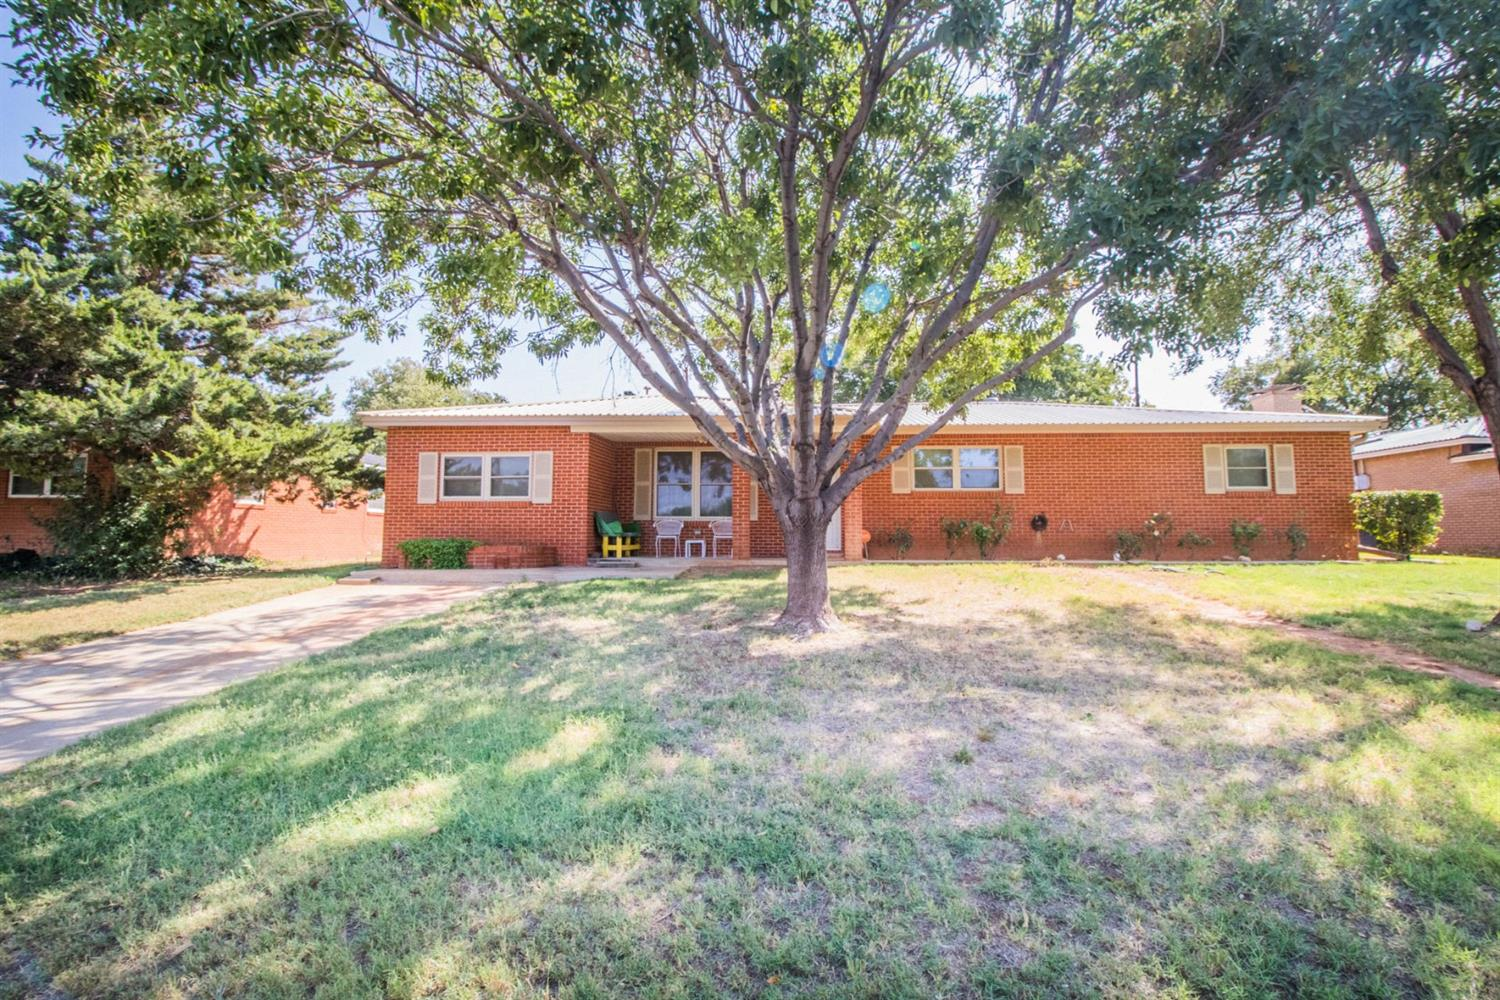 This beautiful home located in Seminole is in a quiet neighborhood across from a park.  There are 4 bedrooms, 2 bathrooms, 3 vehicle carport in back in addition to a 12 X 24 shed and covered patio.  The sewer and water line was just replaced.  The air ducts have been cleaned recently as well as the carpets.  This well maintained home has carpet throughout aside from the kitchen and bathroom tile.  The kitchen has ample cabinet space, a new dishwasher and sink with a nice laundry space just adjacent.  The master has a new tile shower and marble sinks.